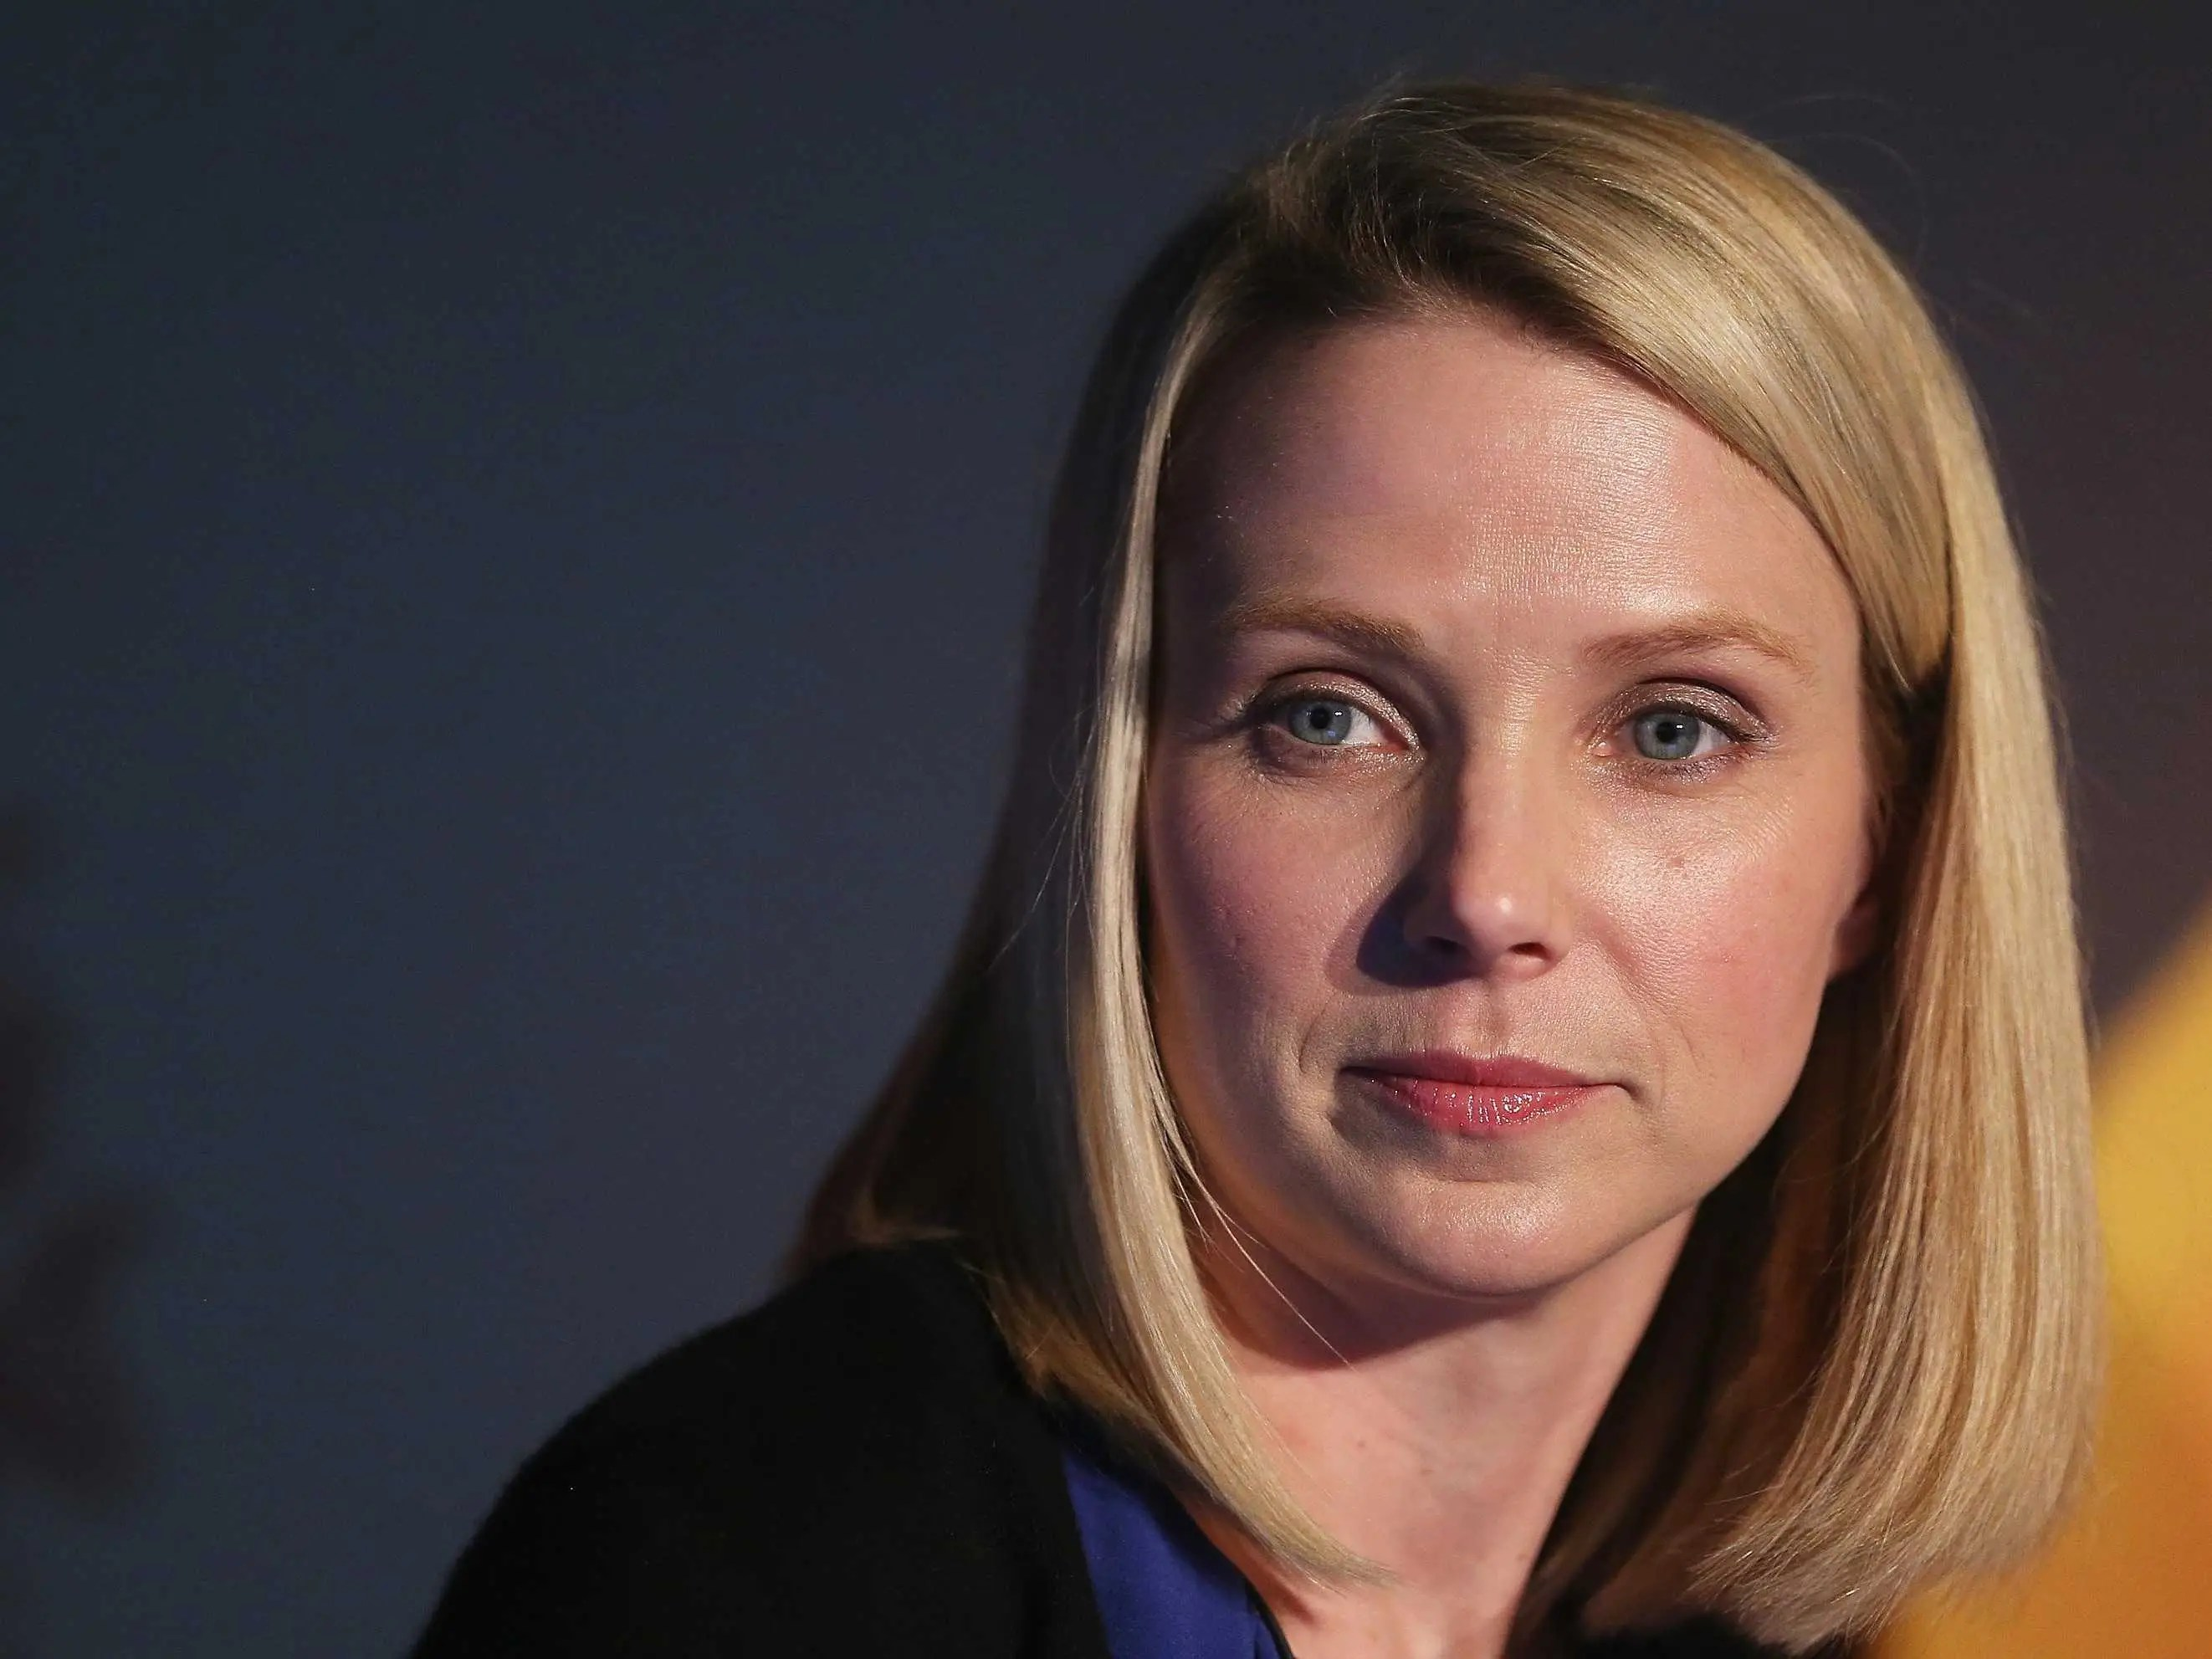 Marissa Mayer has slept at her desk for maximum productivity.